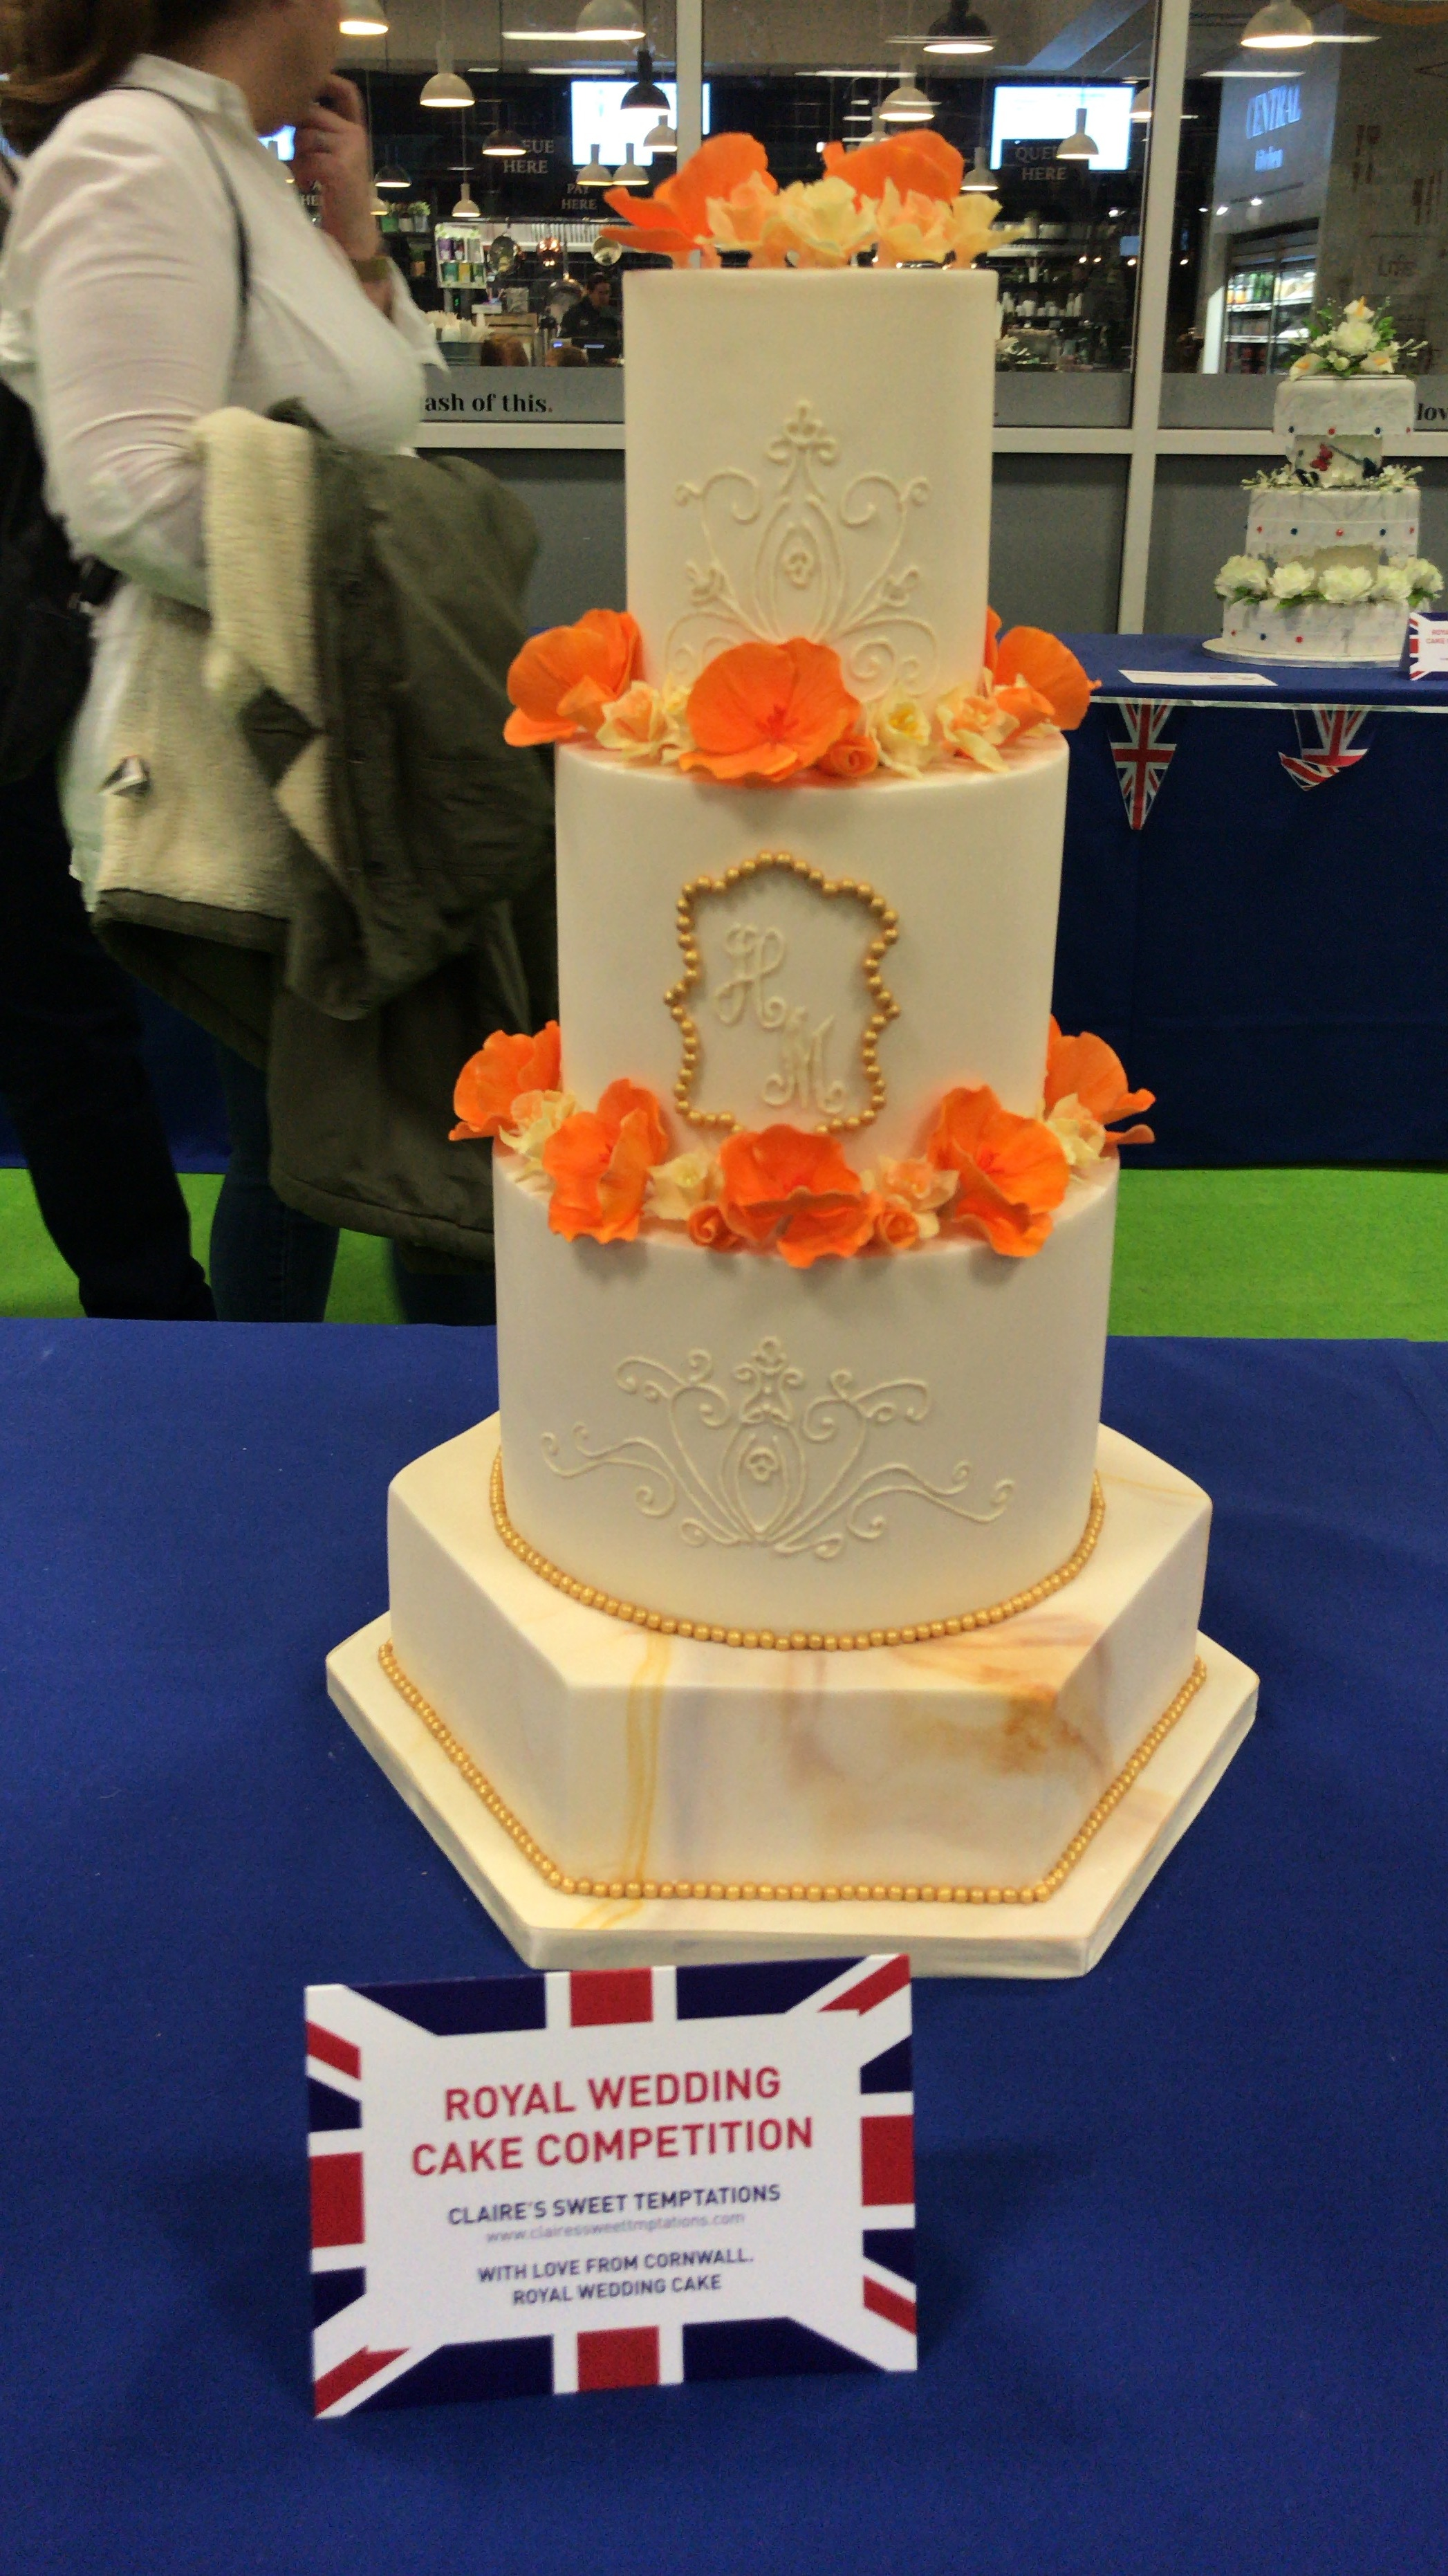 One of my favourite cake designs in the Royal Wedding Cake Competition by Claire's Sweet Temptations...*drooling*